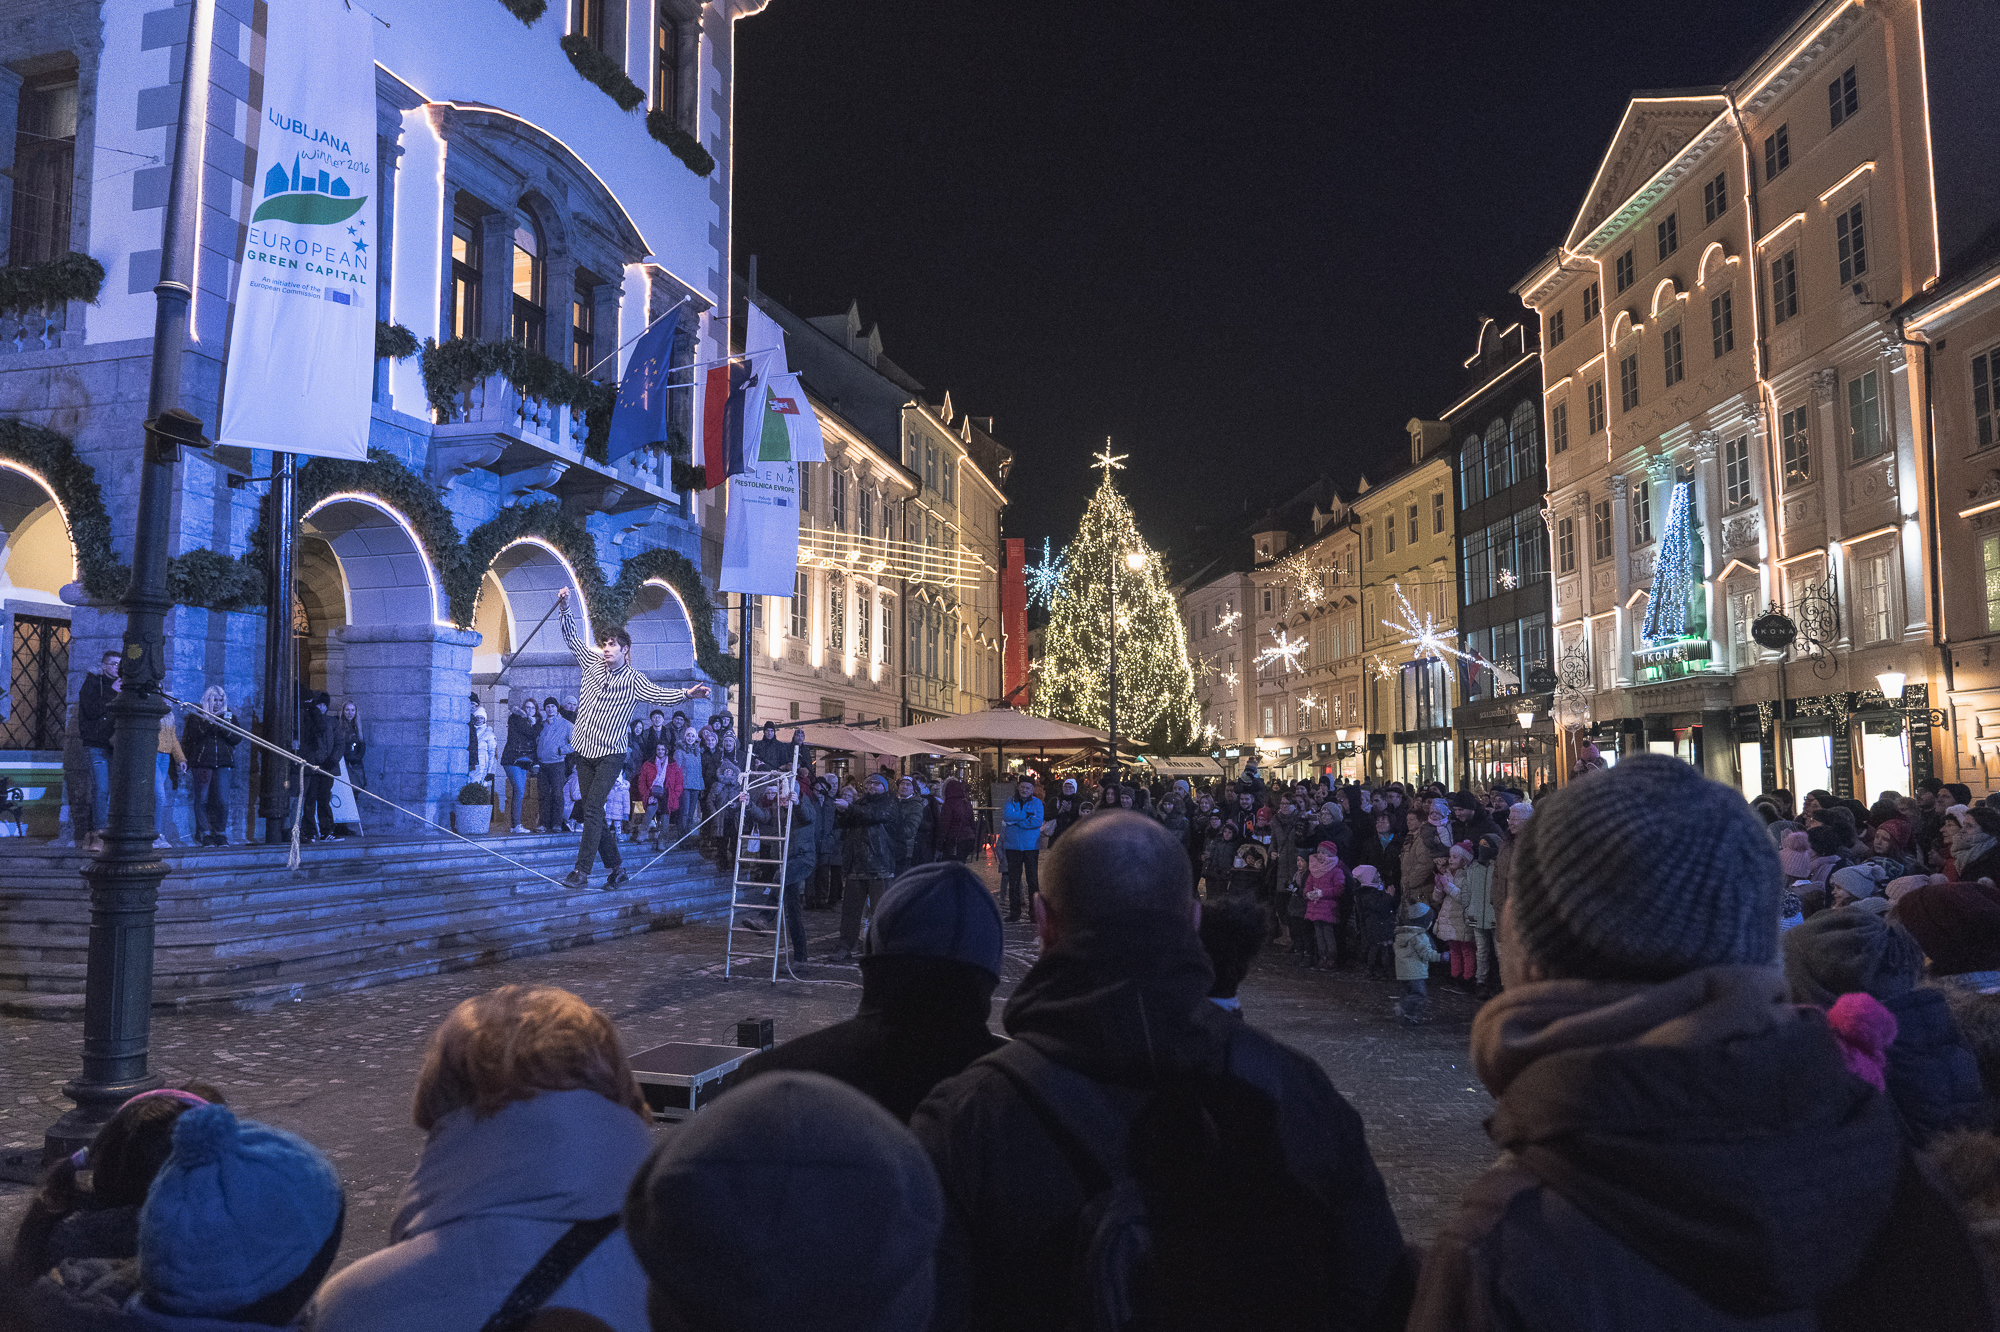 A street performer in front of Ljubljana City Hall at Christmas time